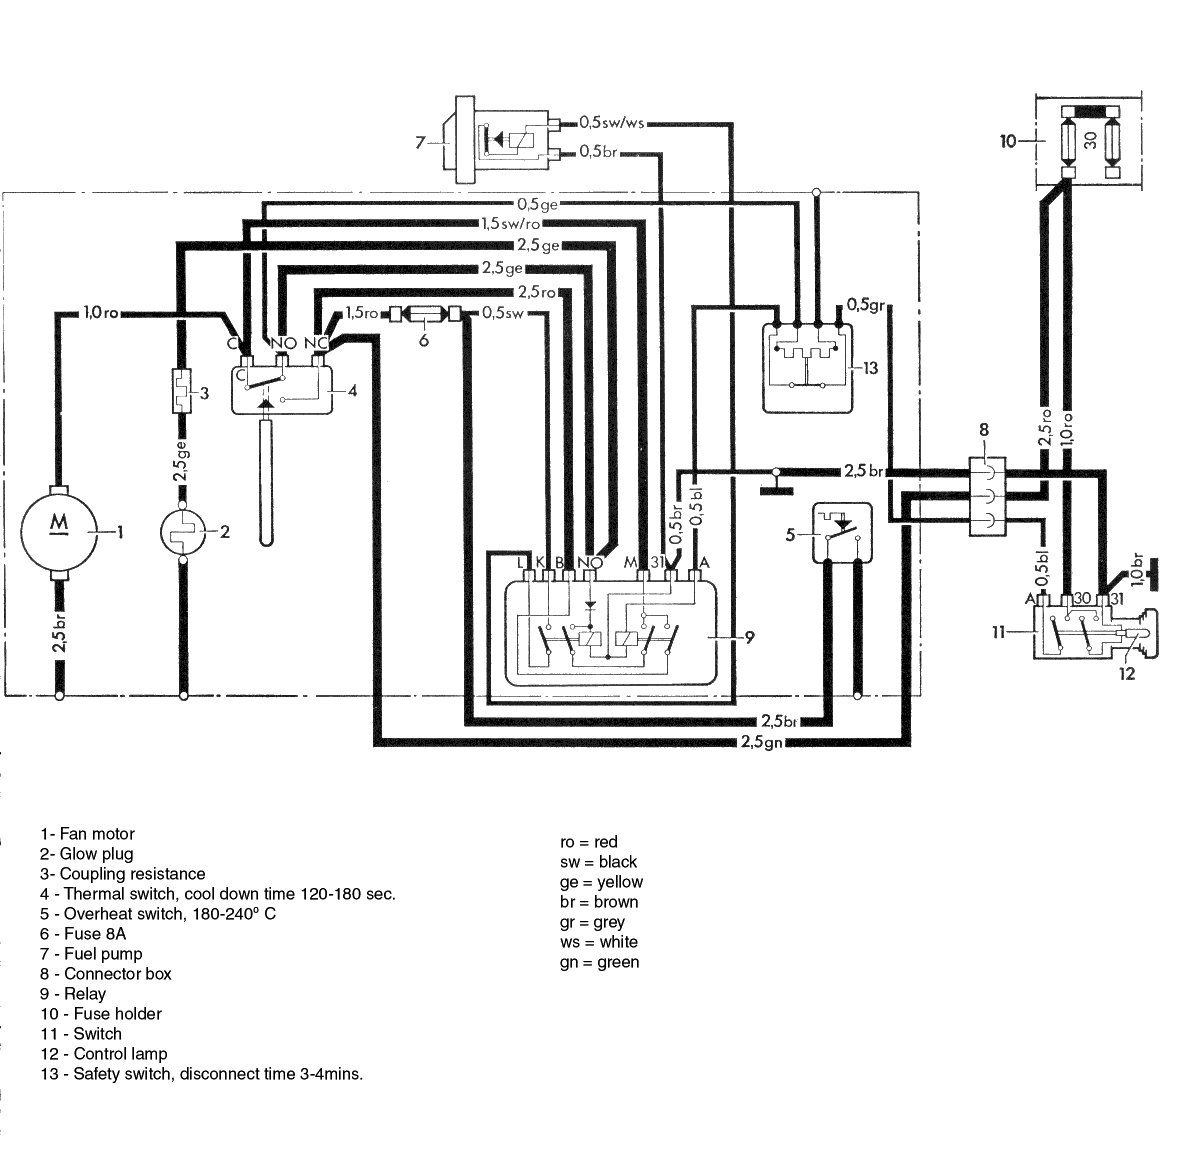 TheSamba.com :: VW Eberspacher Gas Heater Installation Manual - BN 2 Model